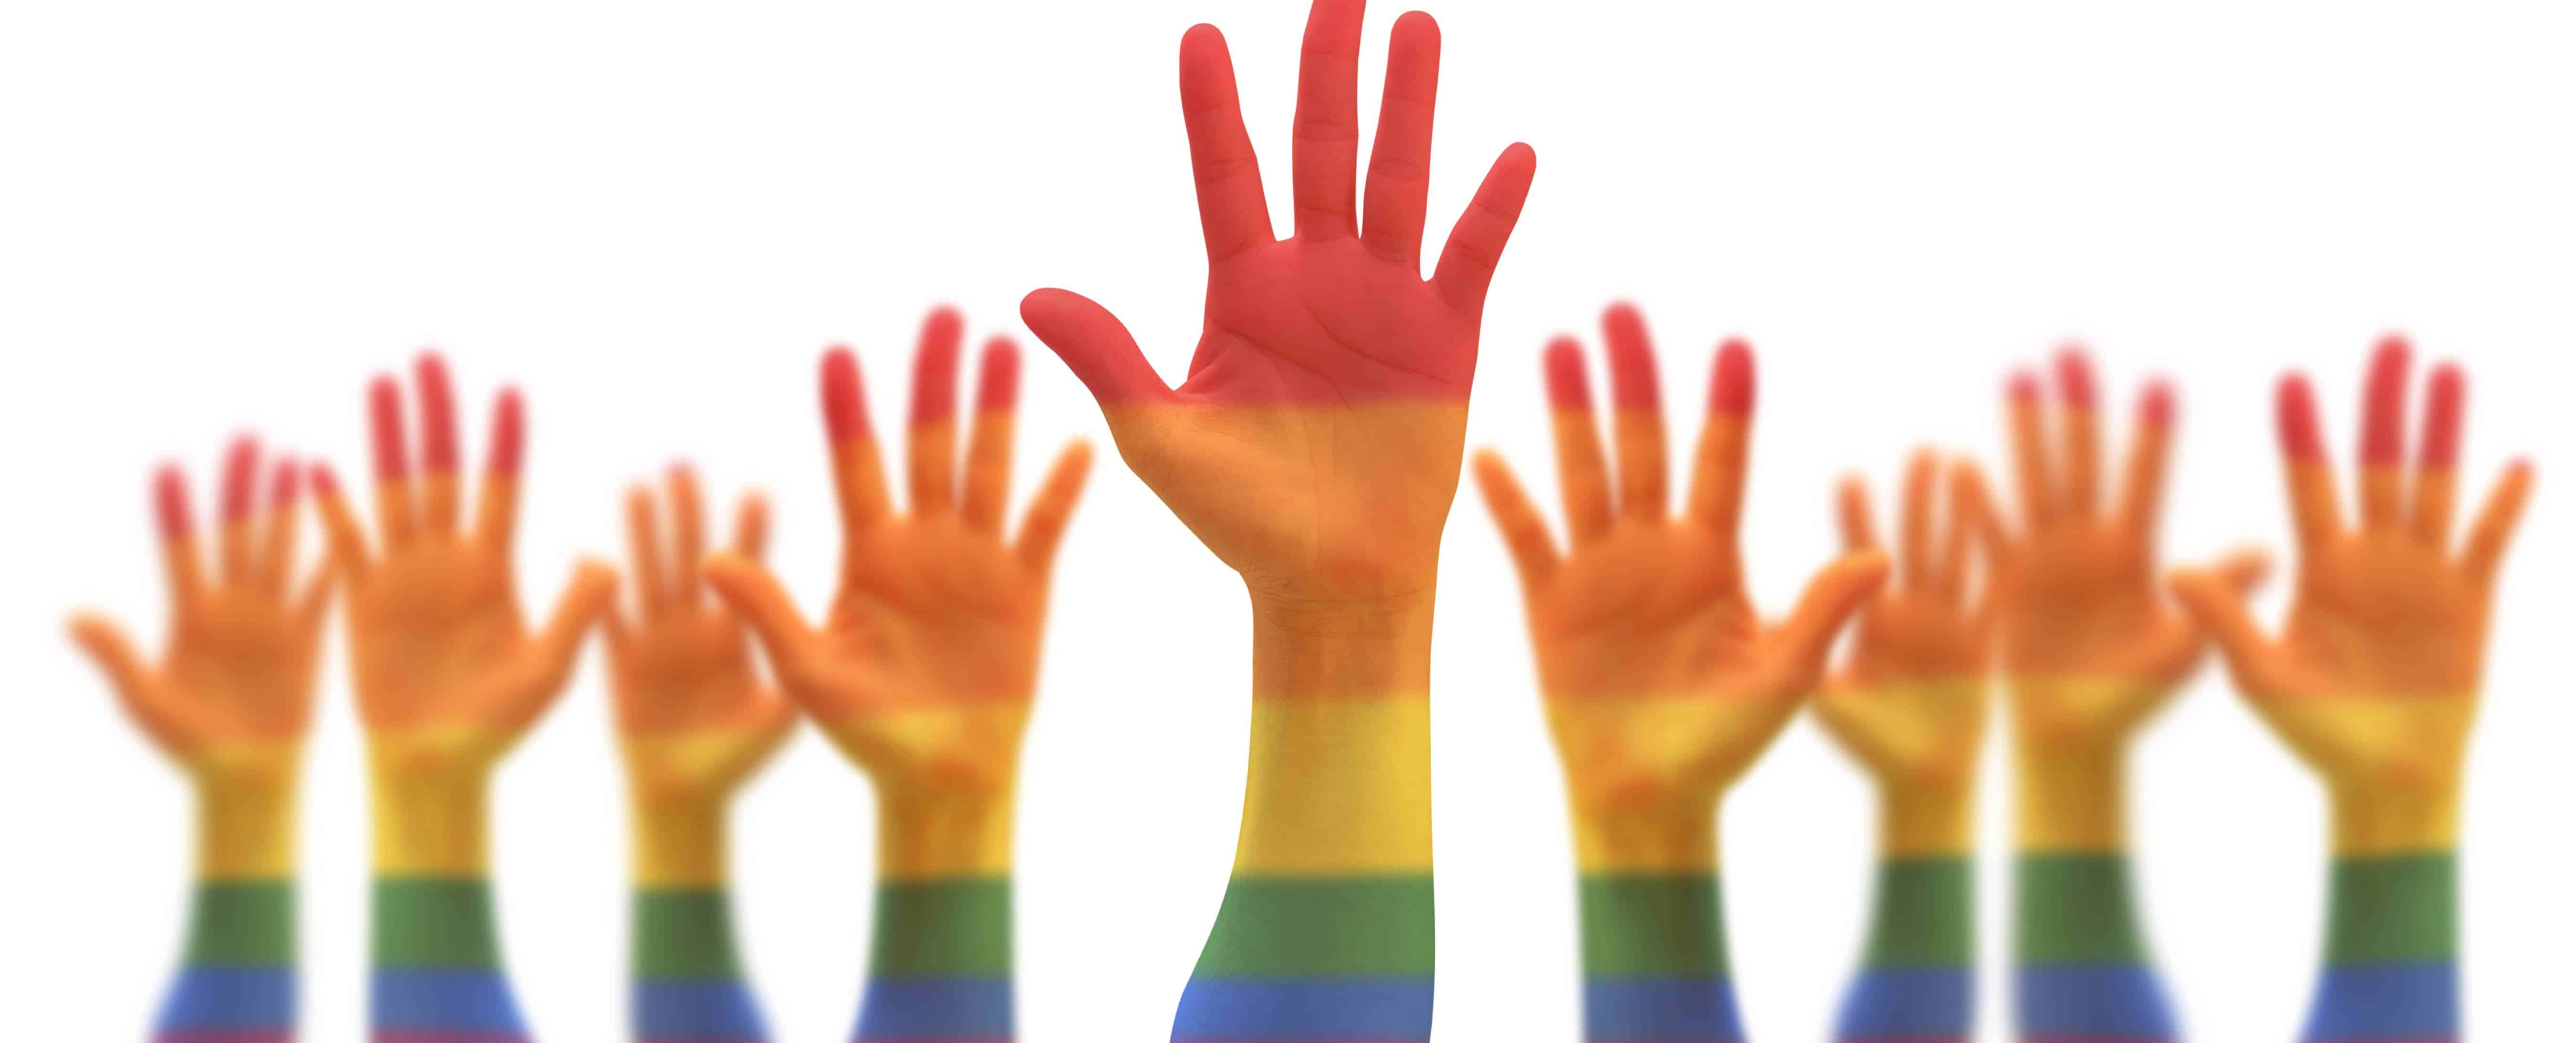 LGBTQ+ image - many raised hands painted rainbow colors